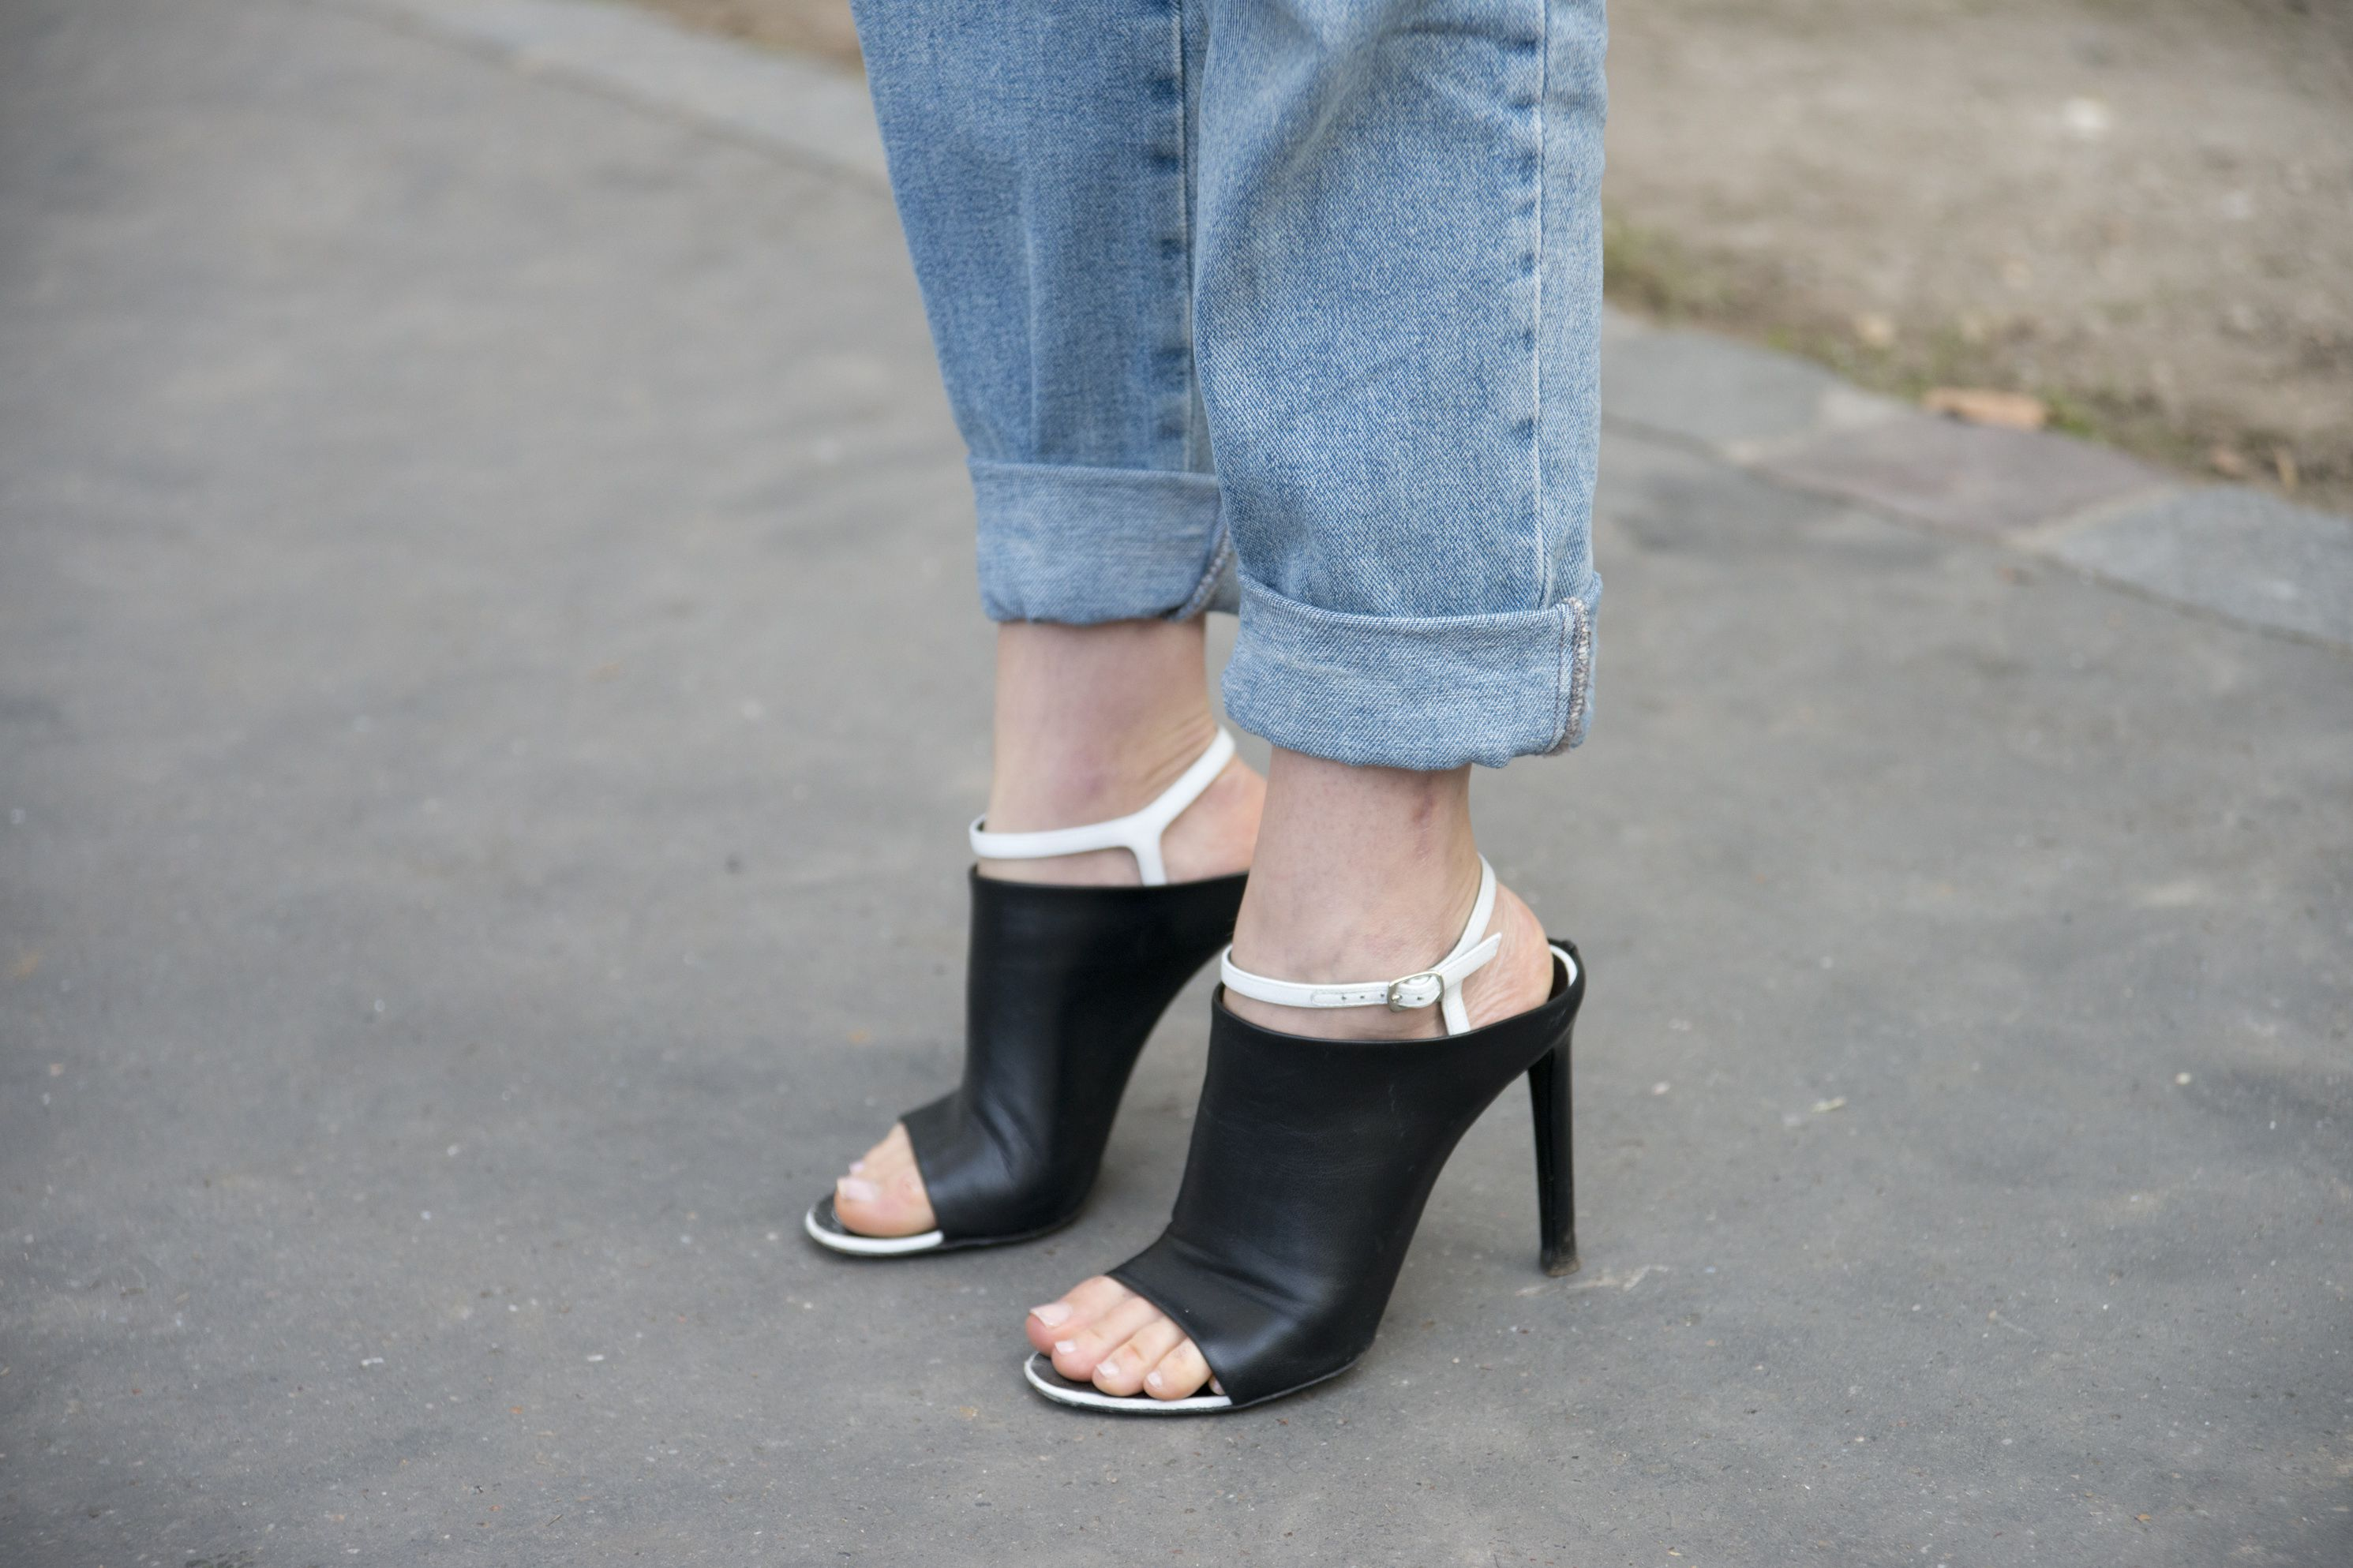 c56b5fb7b266 Shoes to Wear With Cropped Ankle Length Jeans